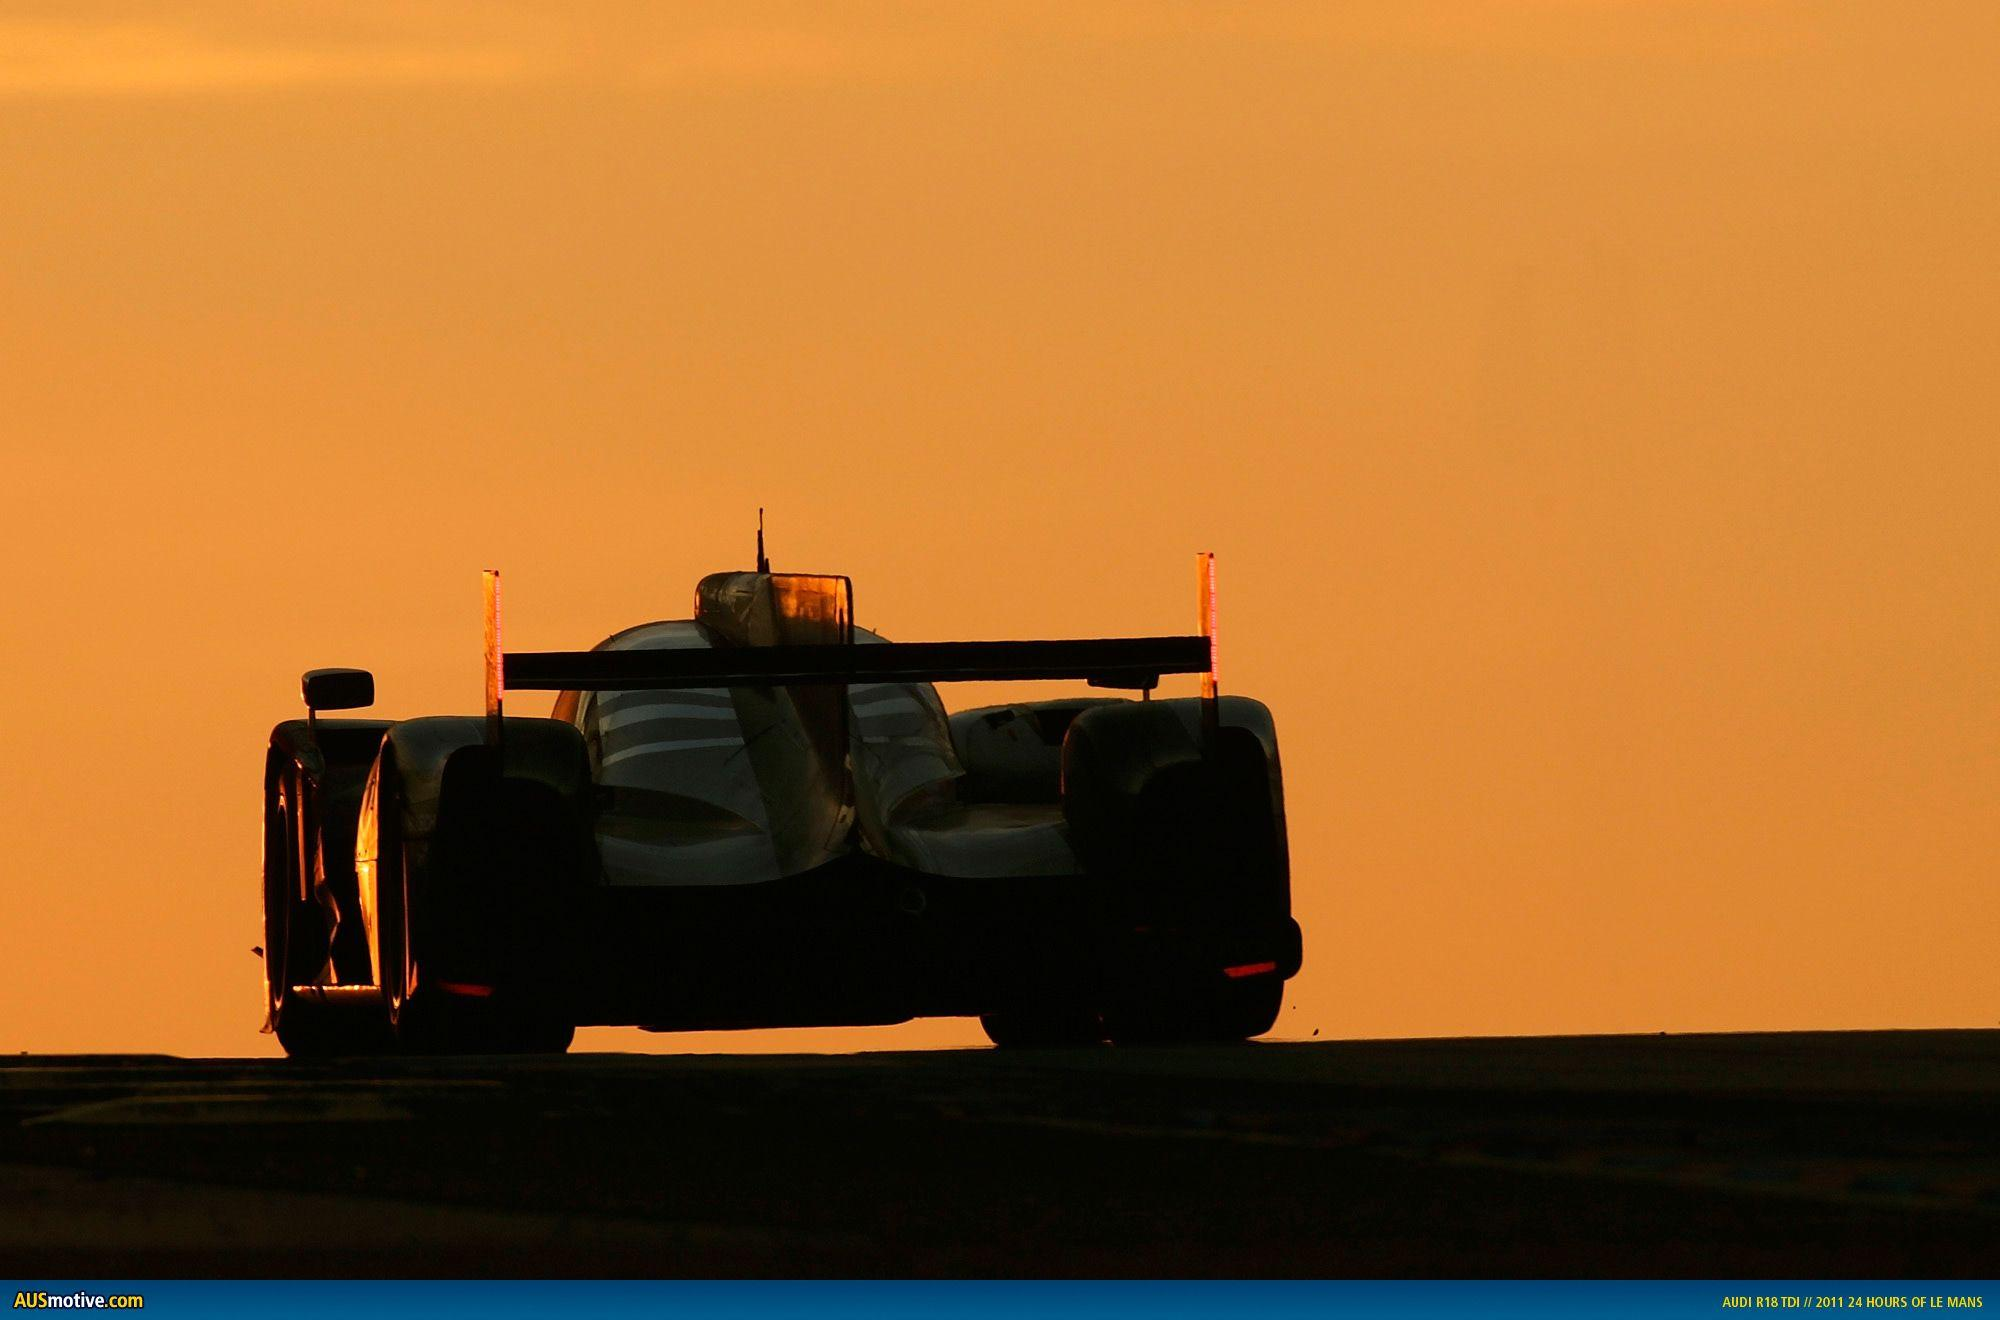 AUSmotive » Reliving Audi's 10th 24 Hours of Le Mans victory